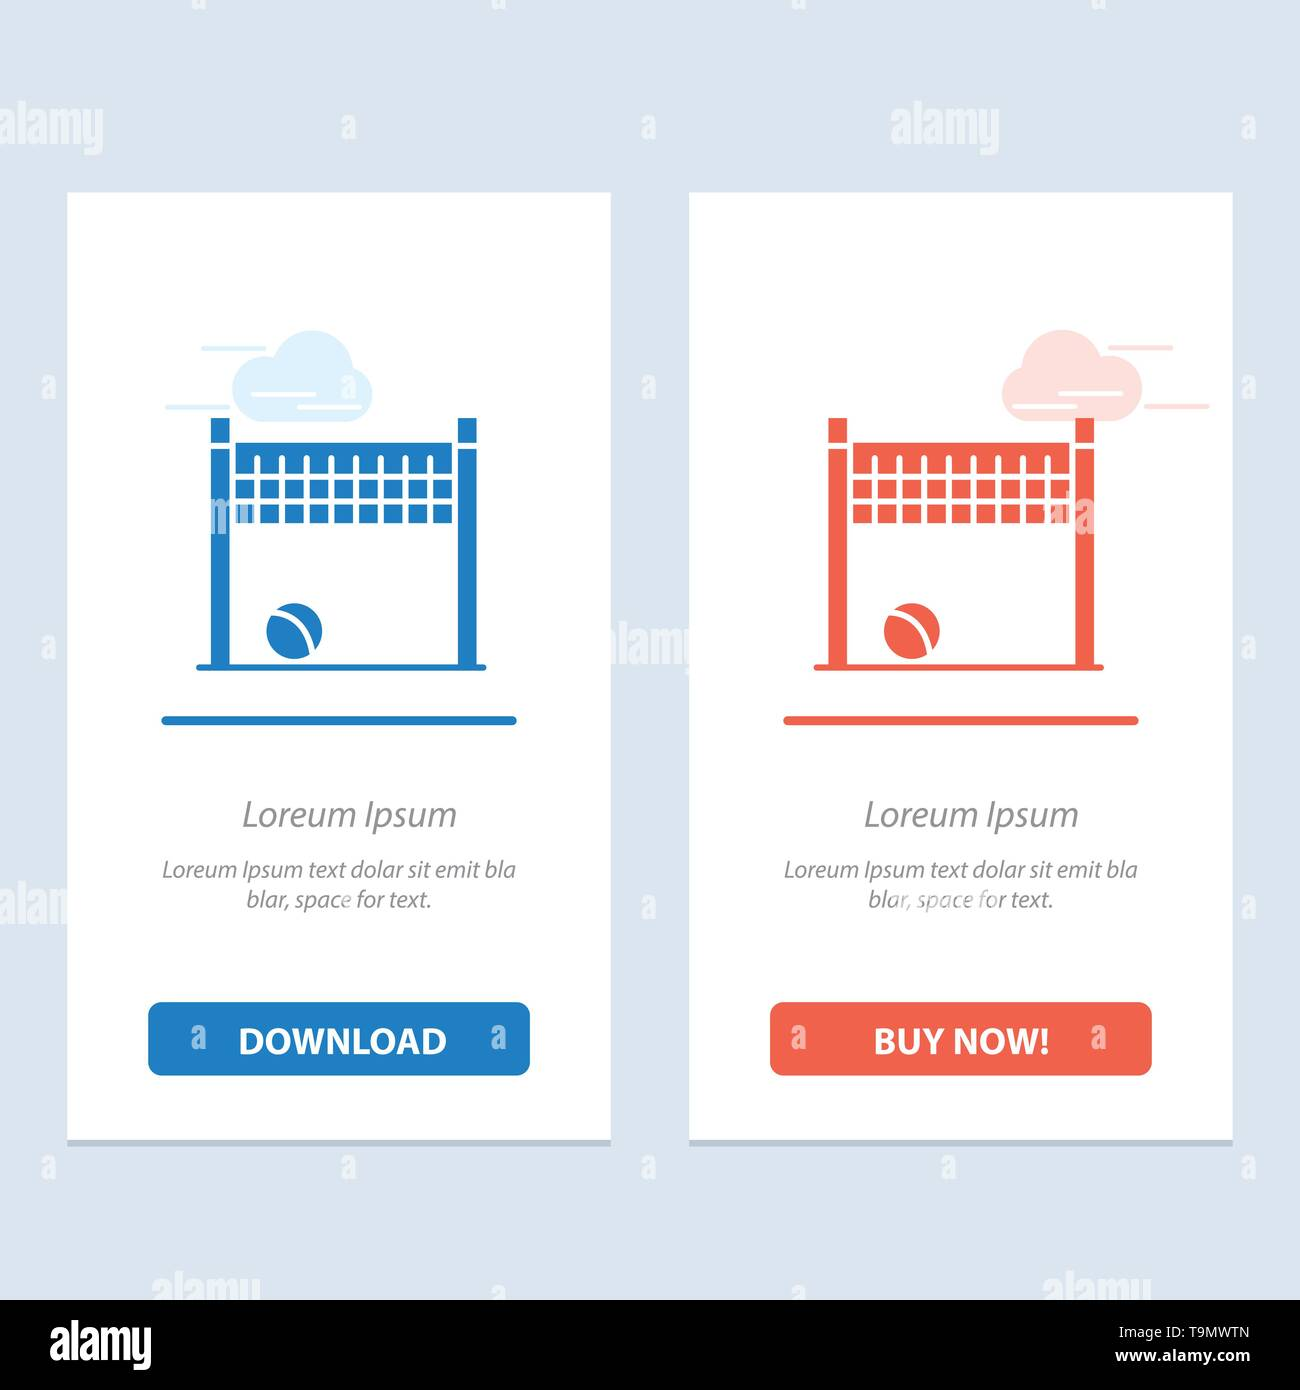 Game, Goalpost, Net, Volleyball  Blue and Red Download and Buy Now web Widget Card Template - Stock Image